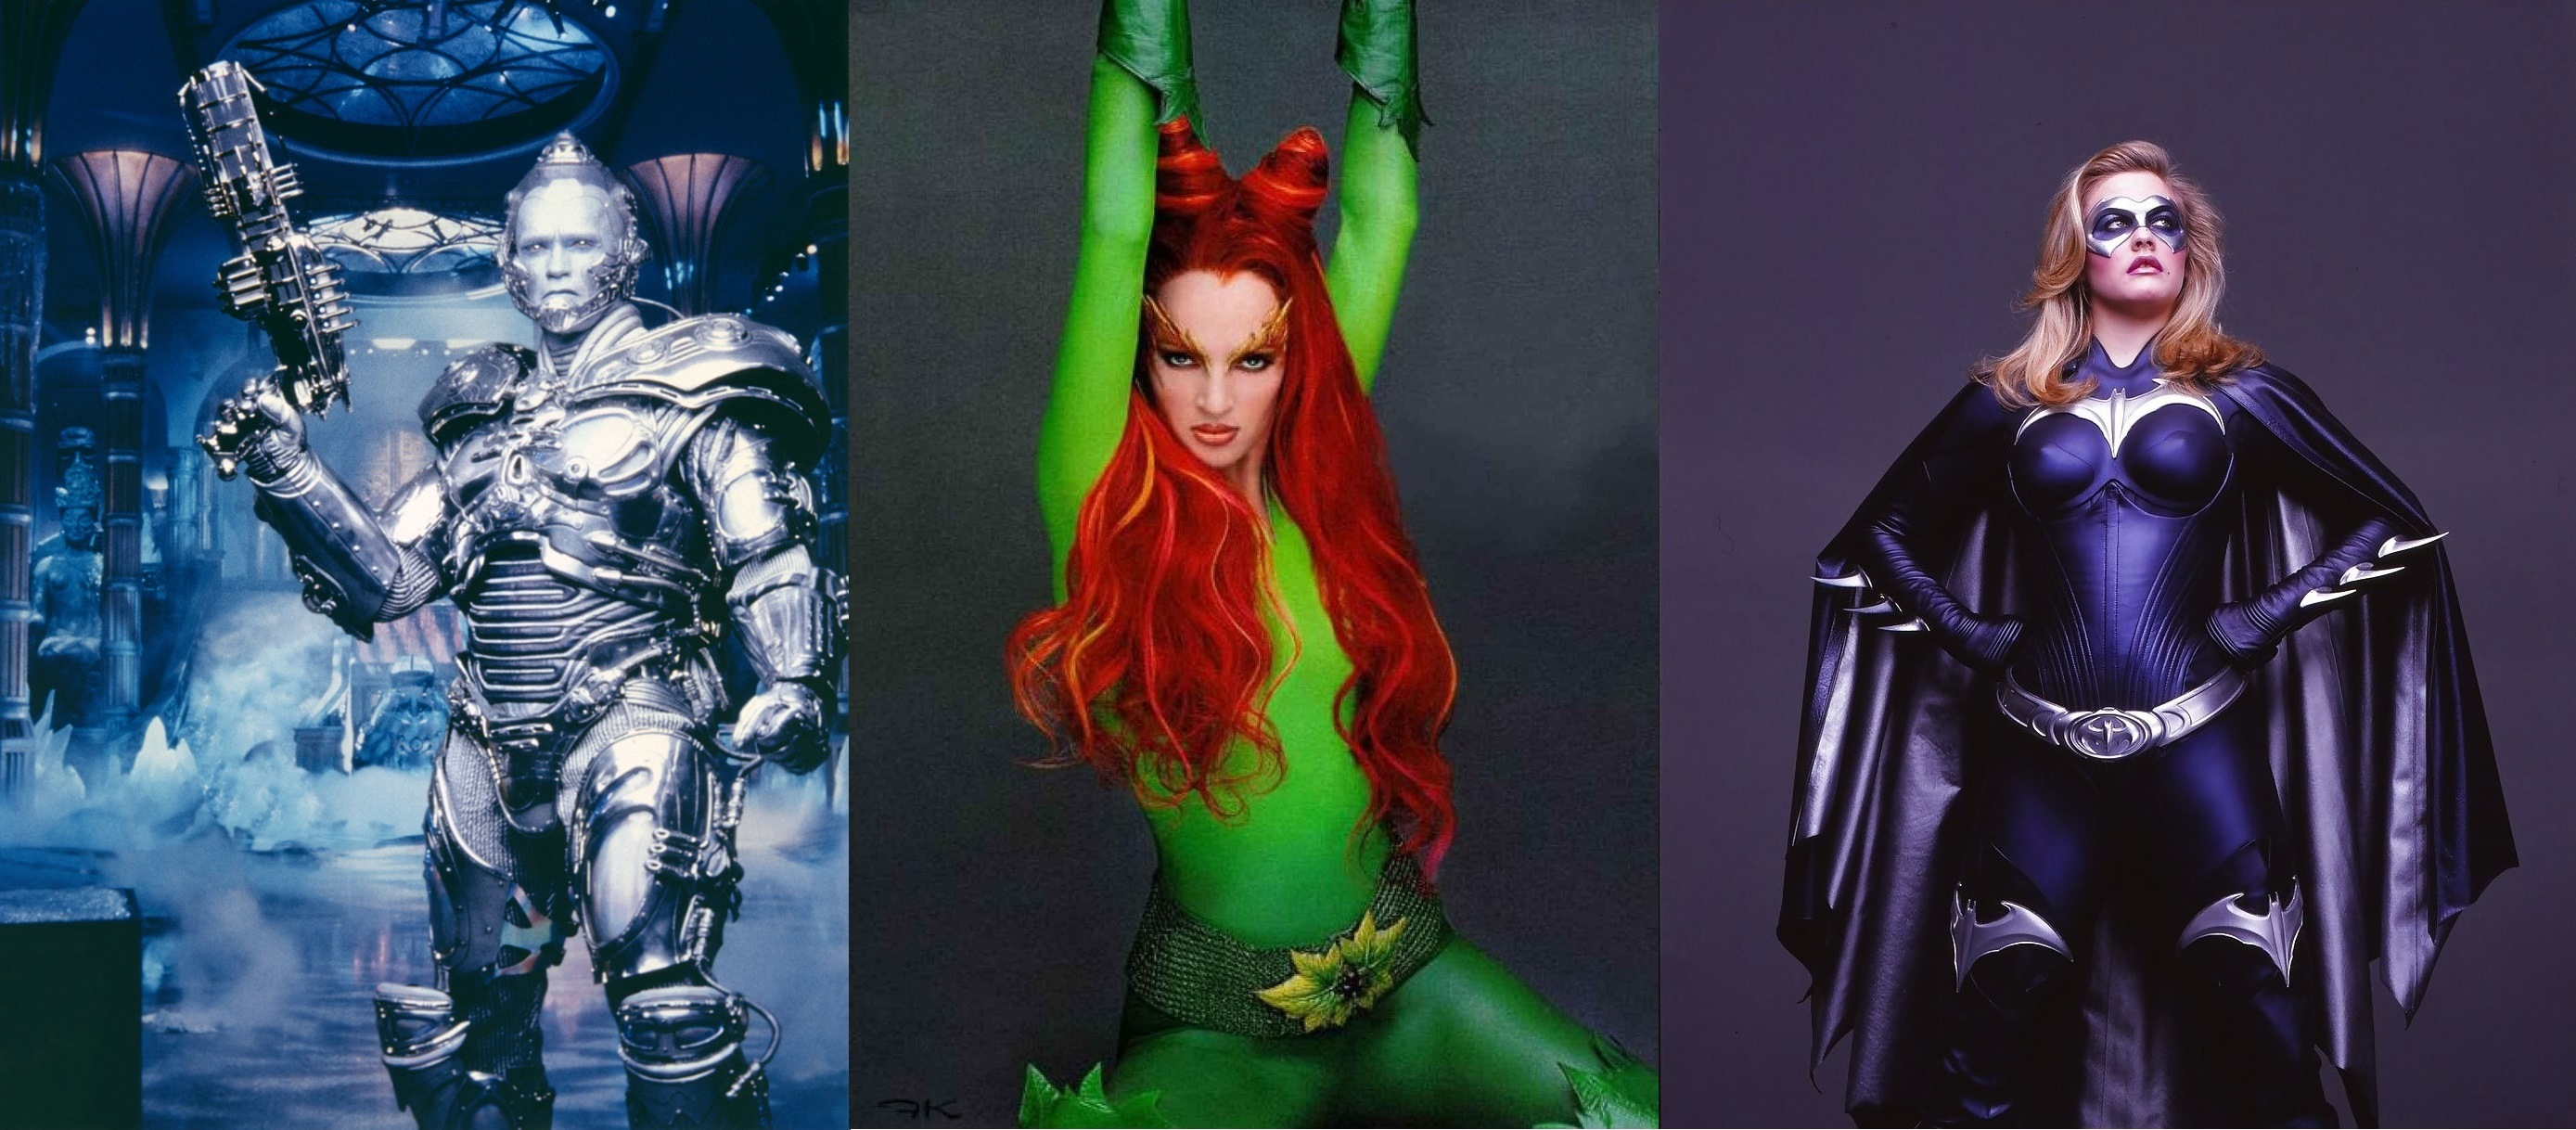 Mr Freeze (Arnold Schwarzenegger), Poison Ivy (Uma Thurman) and Batgirl (Alicia Silverstone) in Batman & Robin (1997)